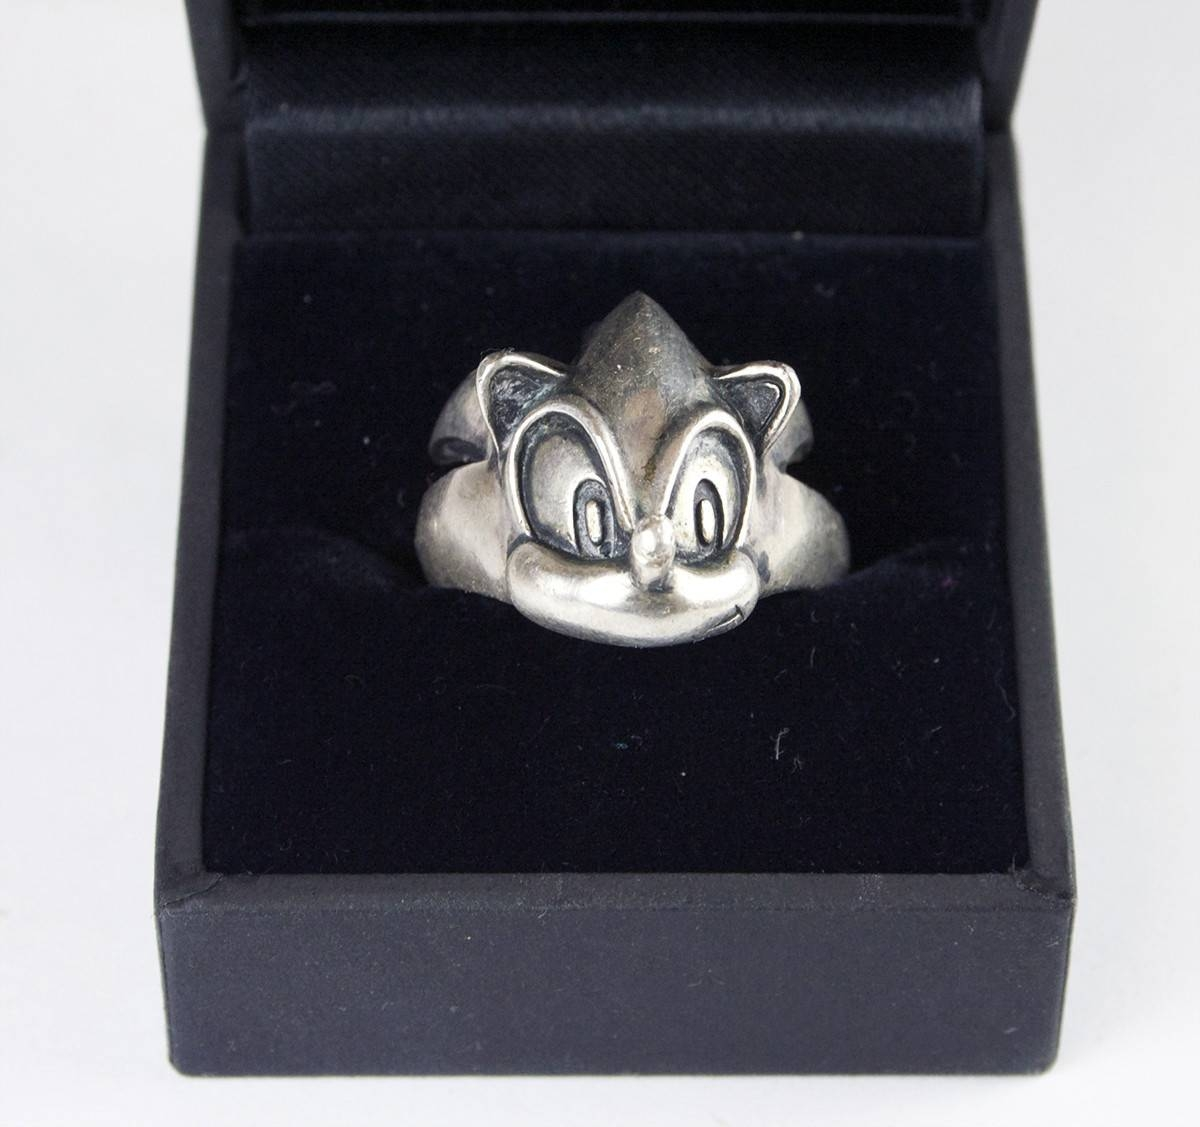 Sonic 10Th Anniversary Sterling Silver Ring Resurfaces On Ebay Intended For Latest 10Th Anniversary Rings (View 13 of 15)